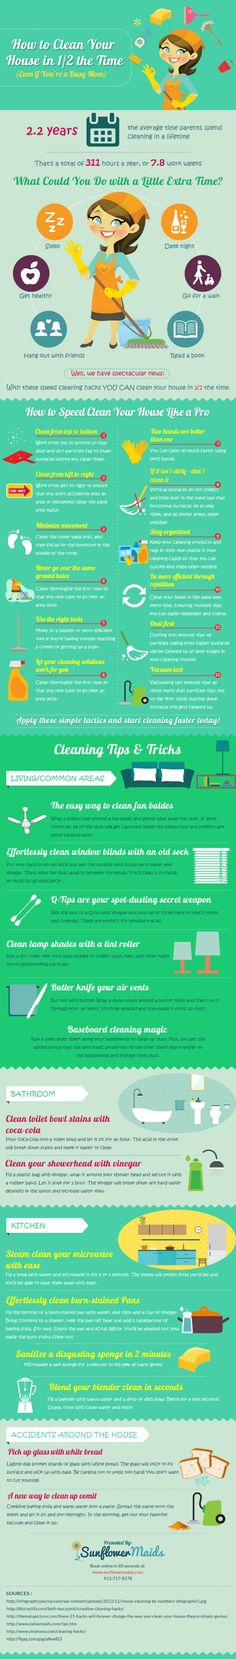 How to Clean Your House in 1/2 the Time (Even If You're a Busy Mom) | Kansas City Moms Blog